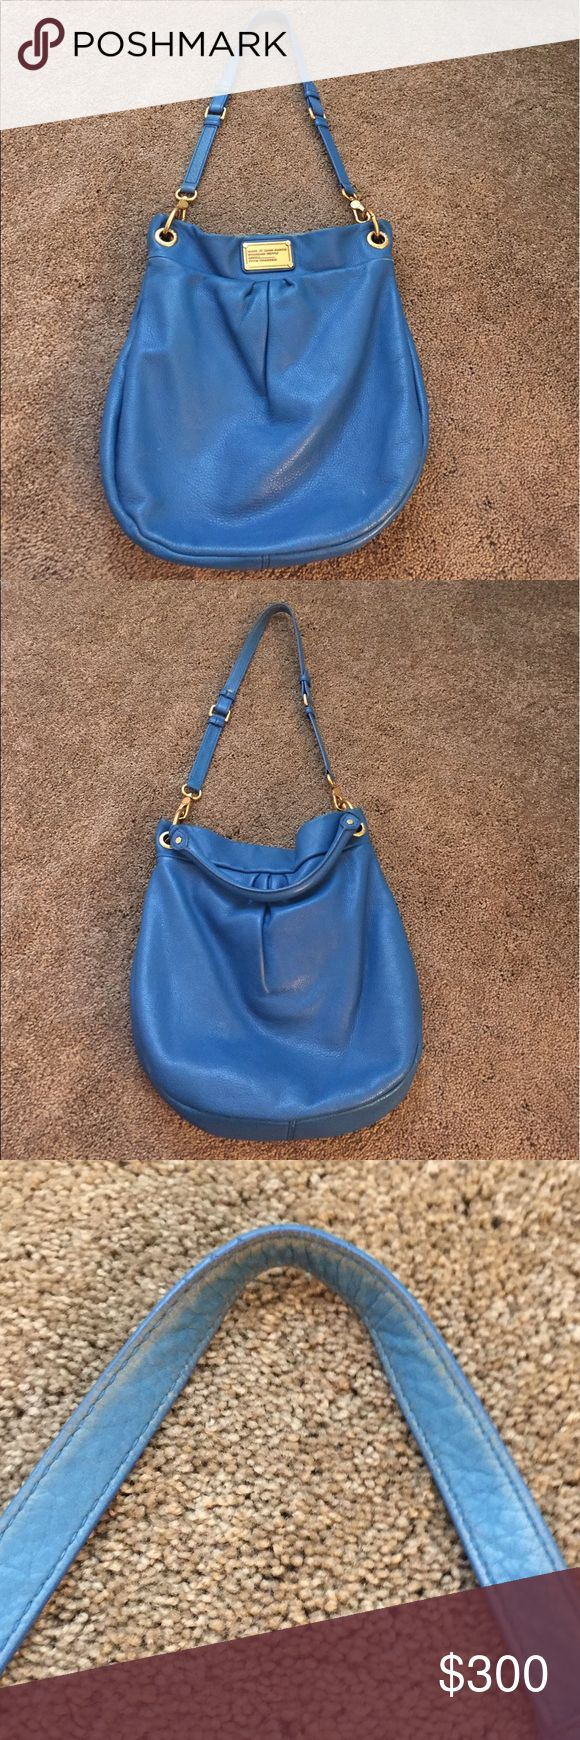 Selling this Marc by Marc Jacobs Classic Hillier hobo on Poshmark! My username is: mayra319. #shopmycloset #poshmark #fashion #shopping #style #forsale #Marc by Marc Jacobs #Handbags